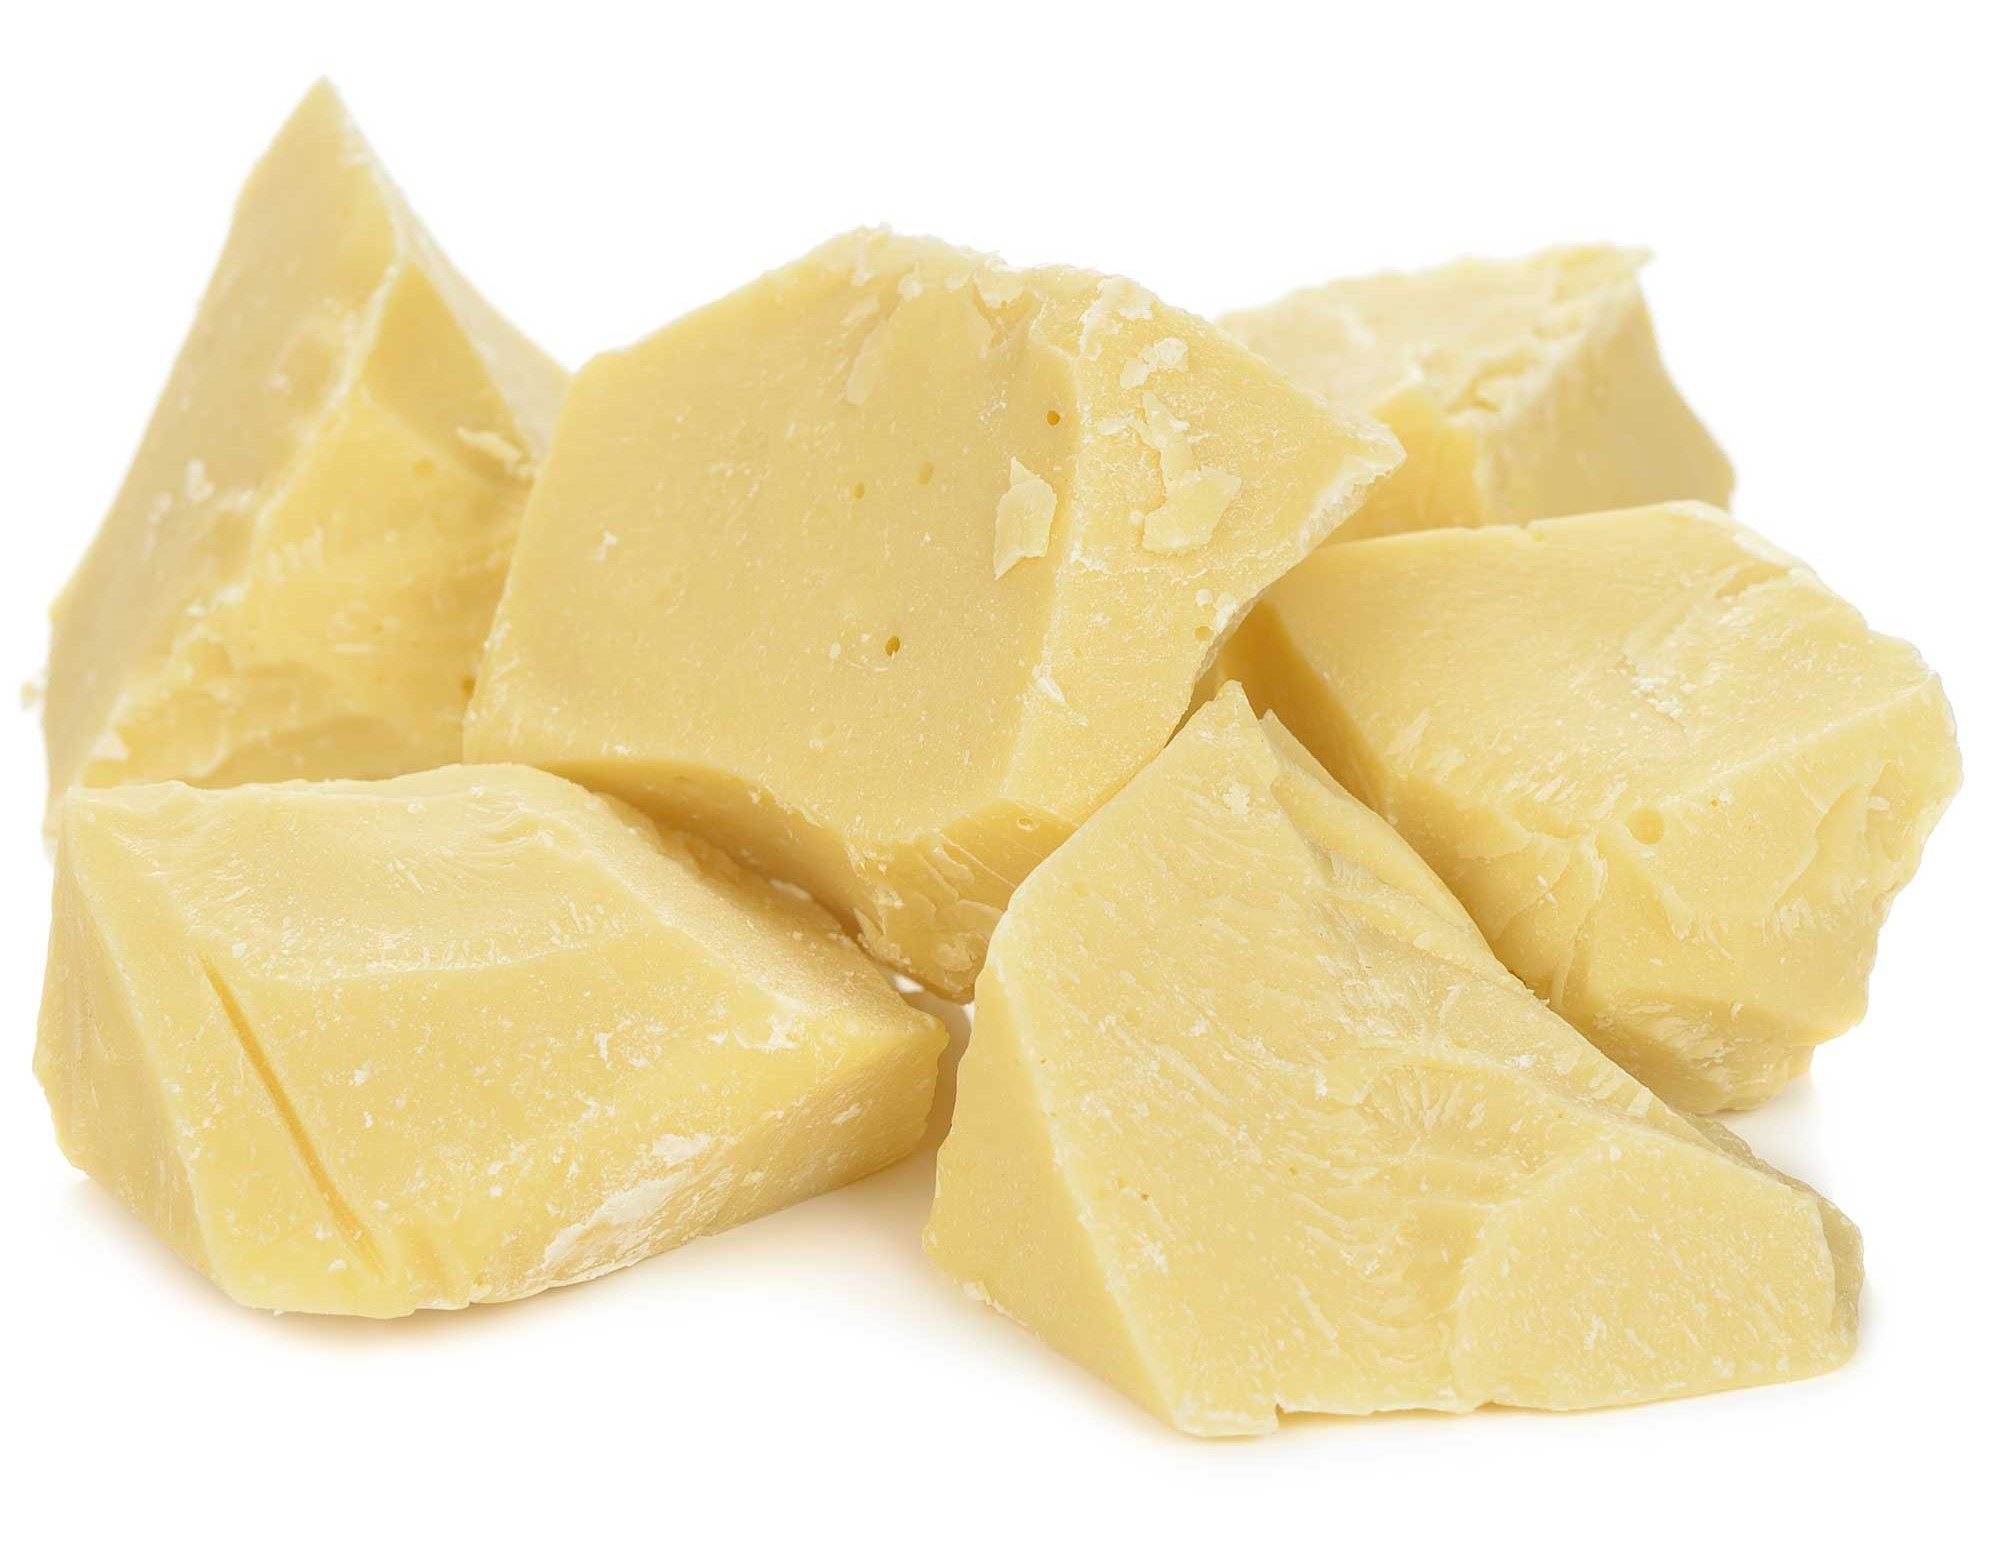 Raw 100% Pure Cocoa Butter Chunks by Its Delish, 4 lbs bulk by It's Delish (Image #1)